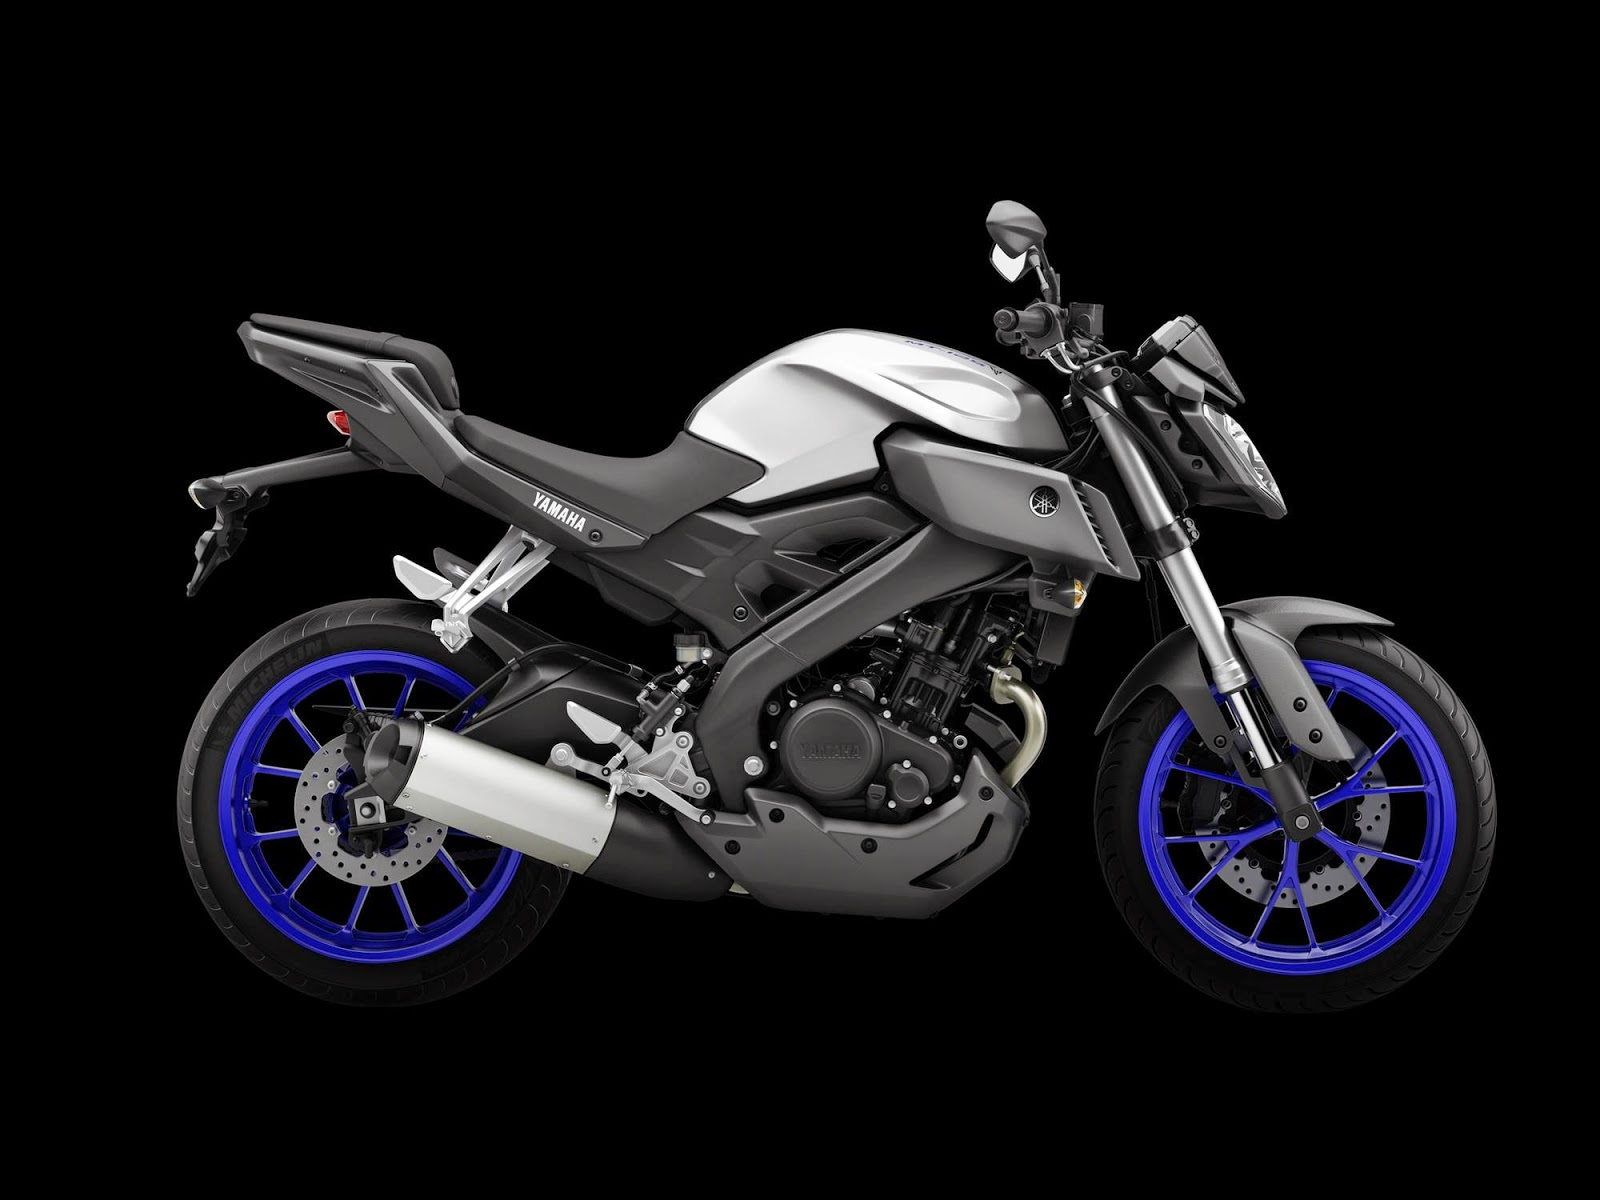 yamaha mt 125 grease n gas. Black Bedroom Furniture Sets. Home Design Ideas